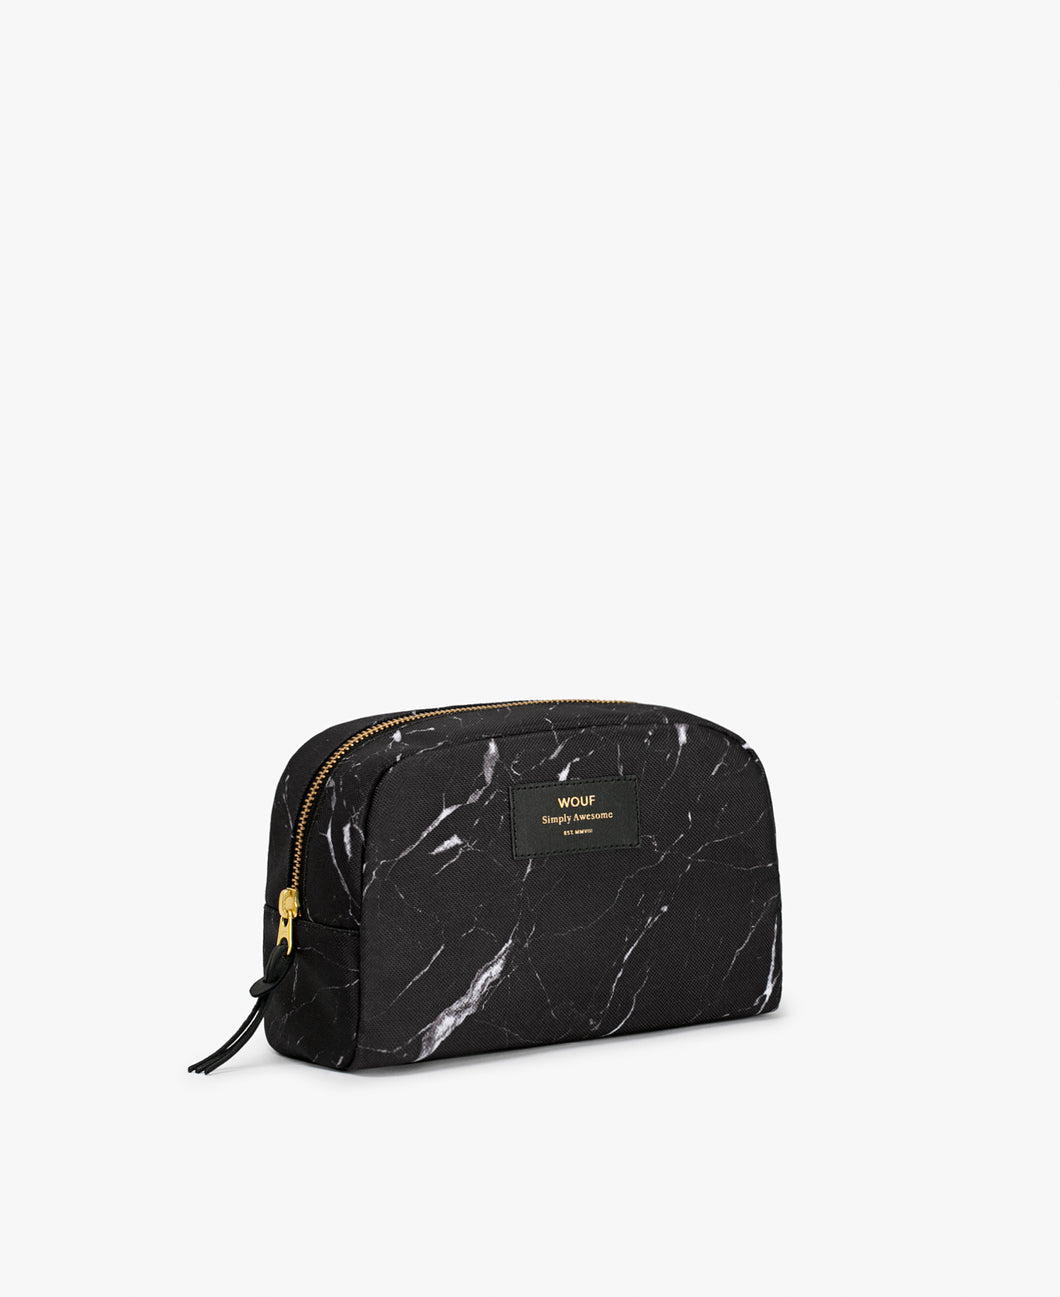 WOUF Cosmetic Bag - Black Marble